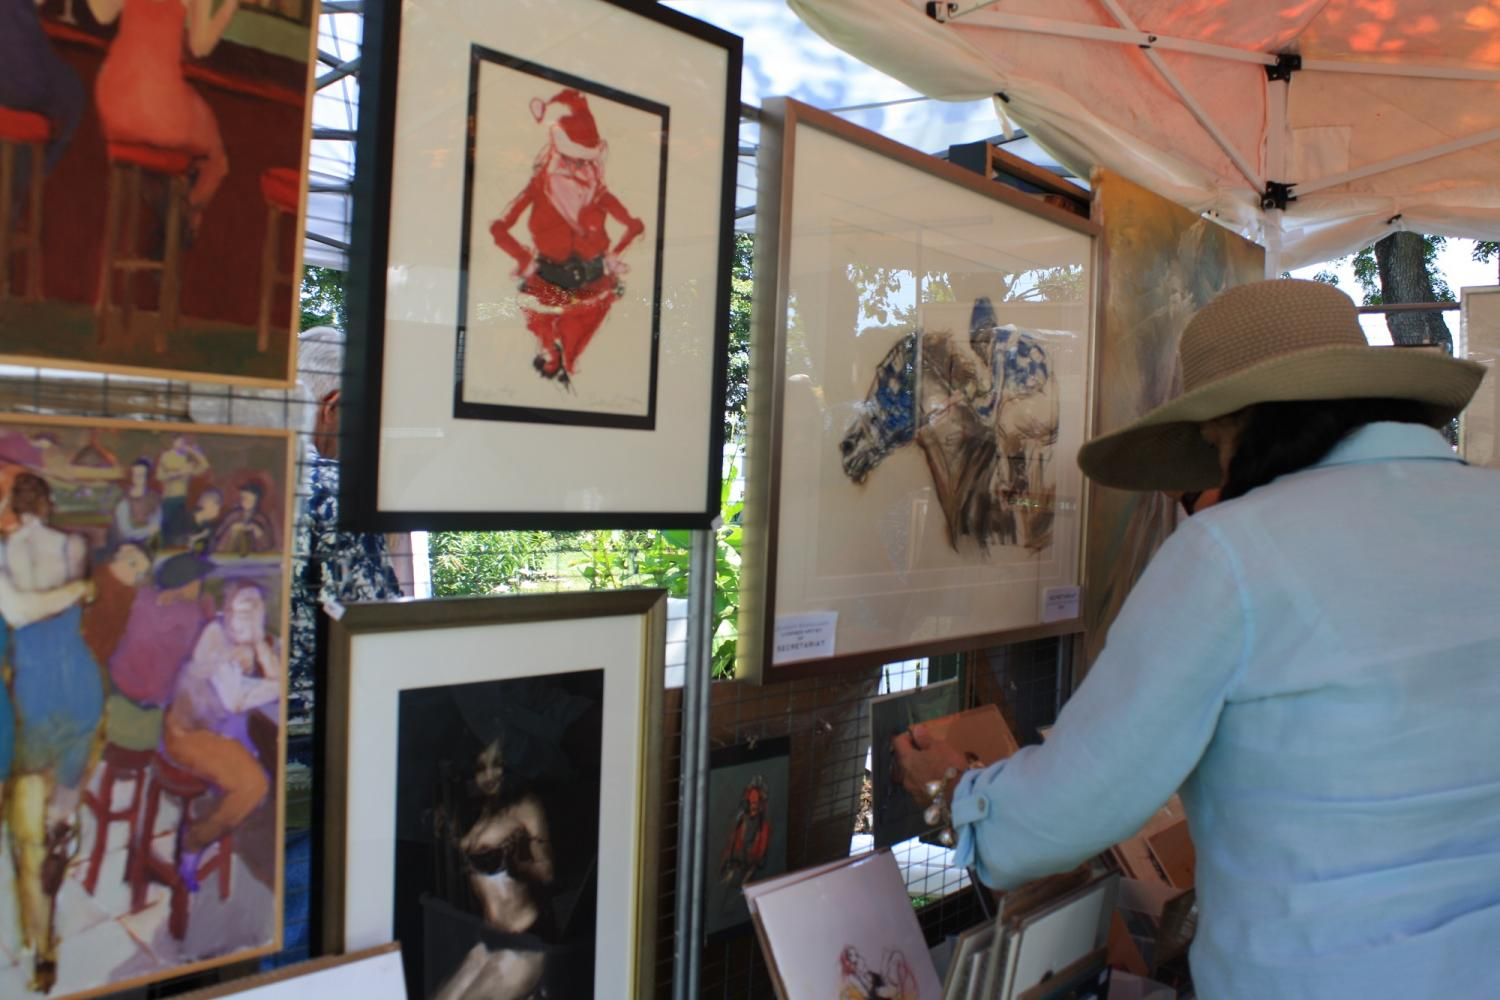 Park goers, observing prints and paintings by Jeaneen Barnhart, a local Louisville and longtime Art In Speed Park featured artist. Barnhart's most popular piece, Secretariat, a depiction of the 1973 Triple Crown champion (far right) was featured at Barnhart's booth as well.